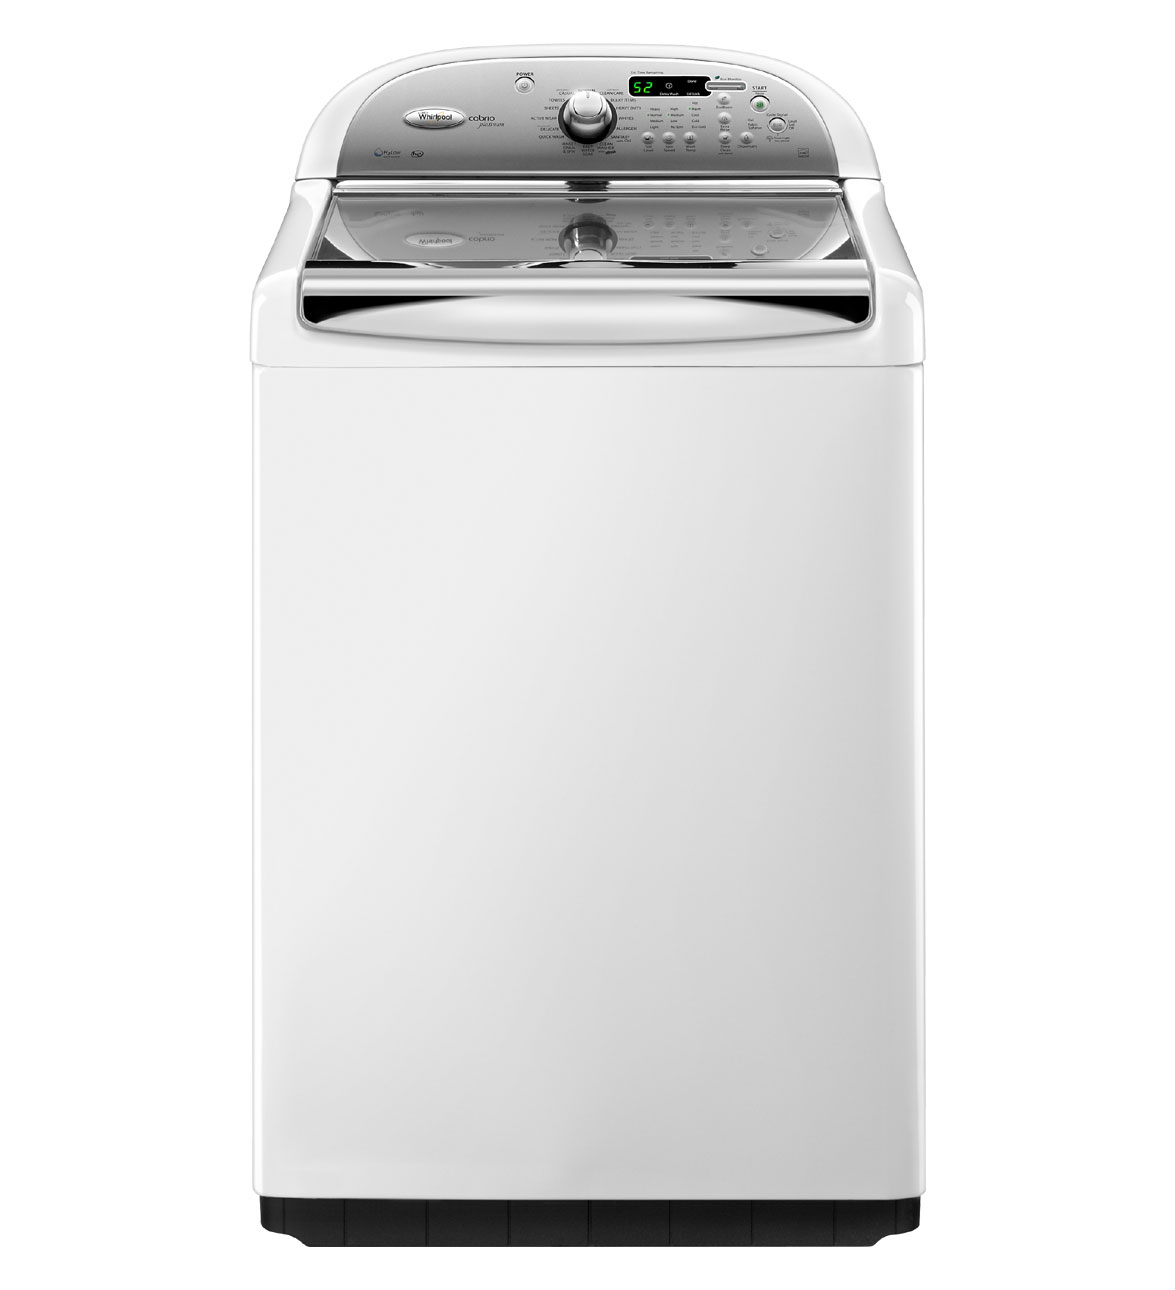 Whirlpool Cabrio Platinum 4.6 cu ft High-Efficiency Top-Load Washer (White) ENERGY STAR (Model: WTW8800YW) - Reviews of Top 11 Top Load Washers